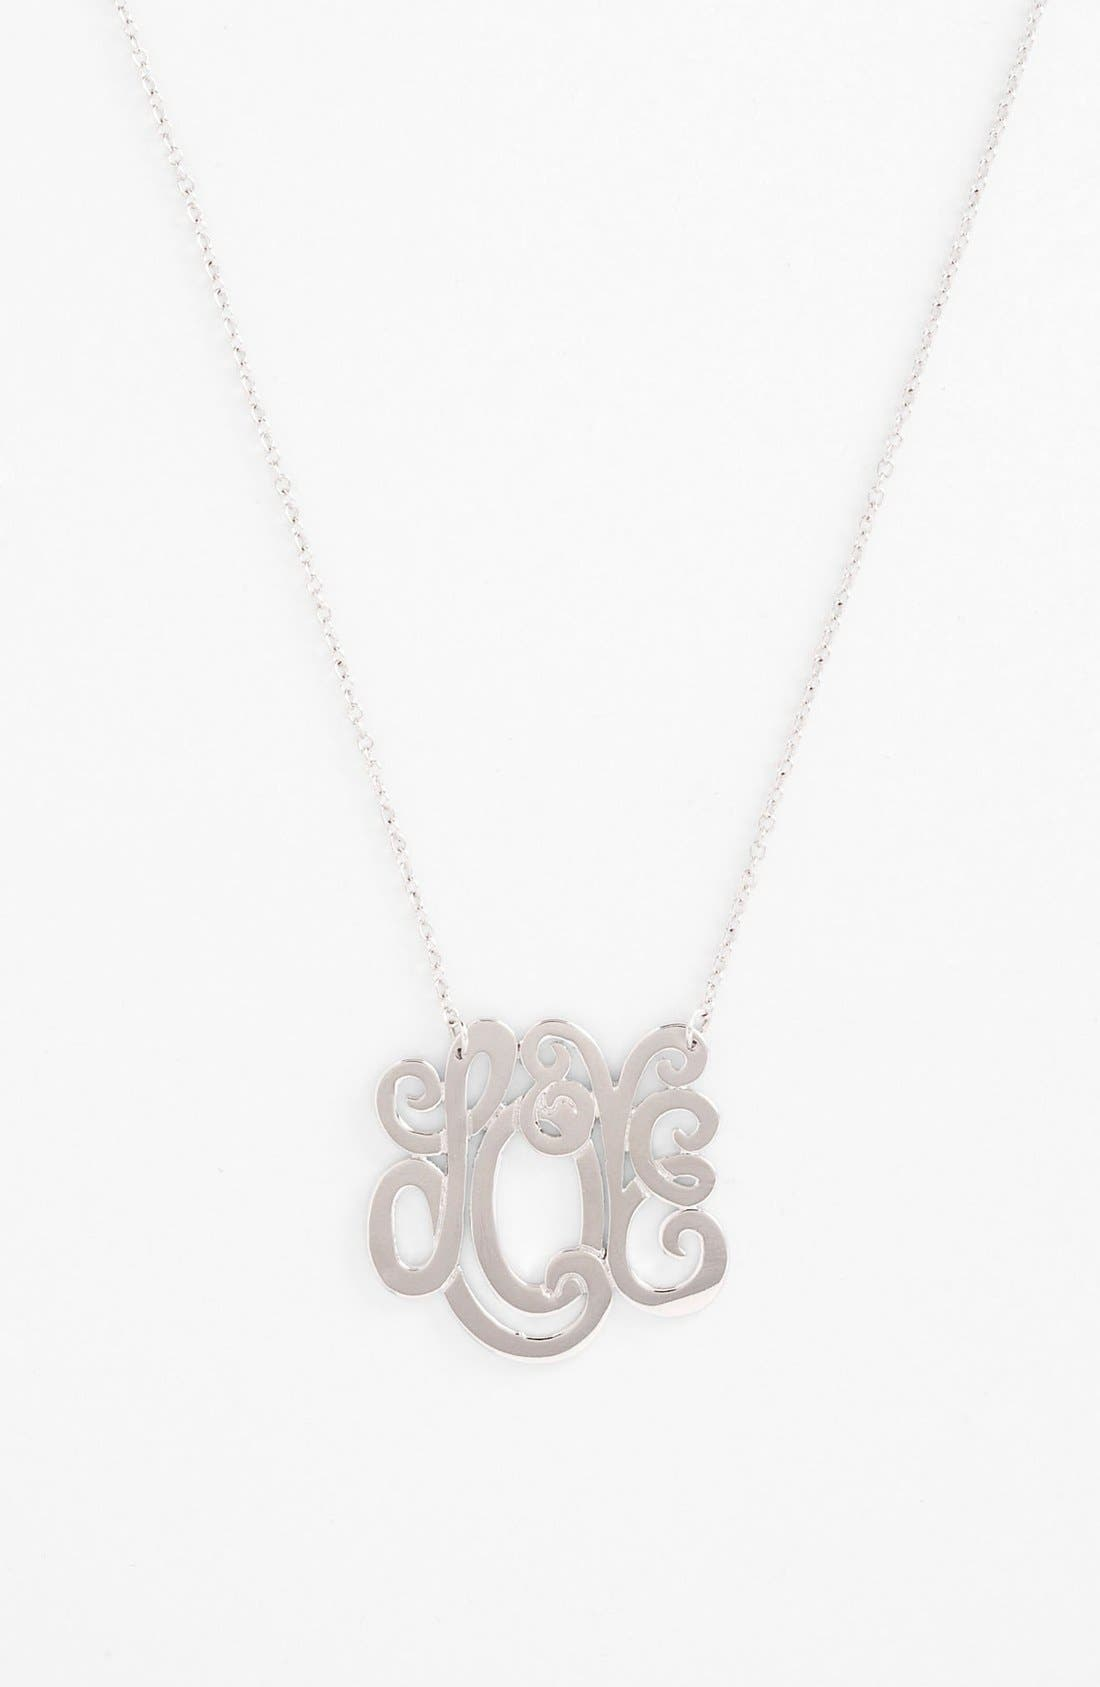 Alternate Image 1 Selected - Ariella Collection 'Love' Pendant Necklace (Nordstrom Exclusive)